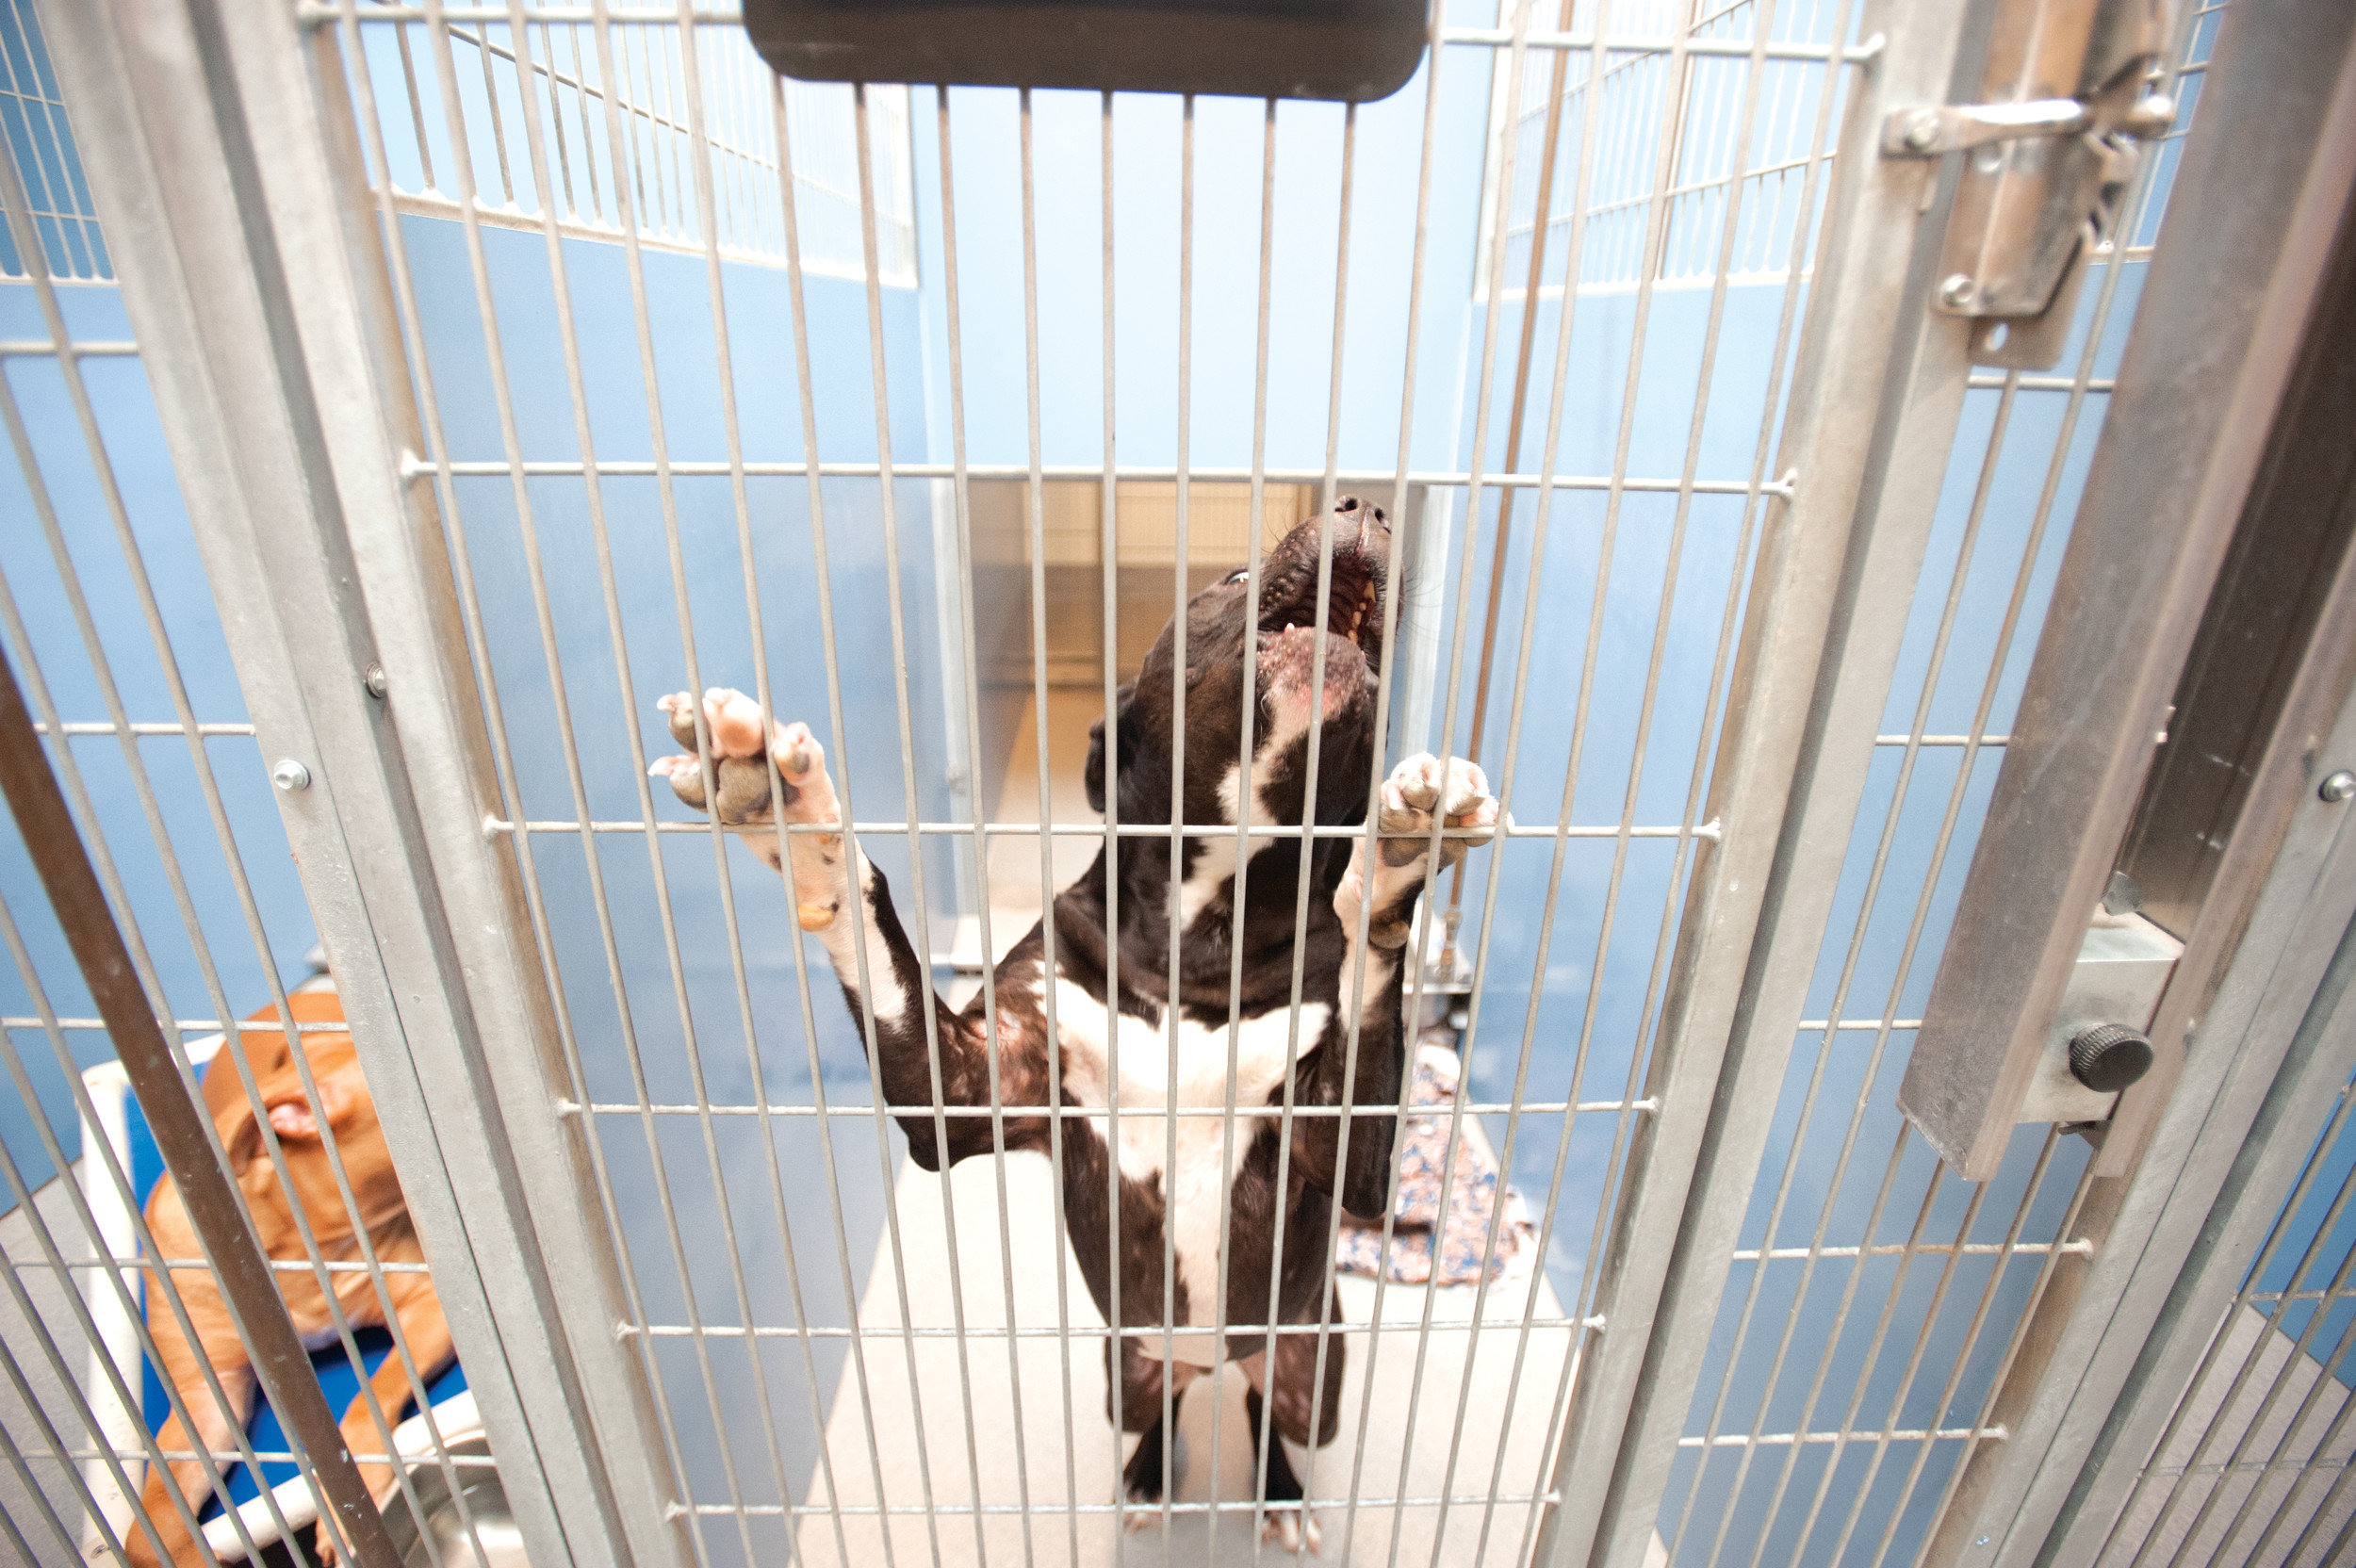 A pitbull barks for attention at the city of Jacksonville's animal shelter. Photos: Dennis Ho